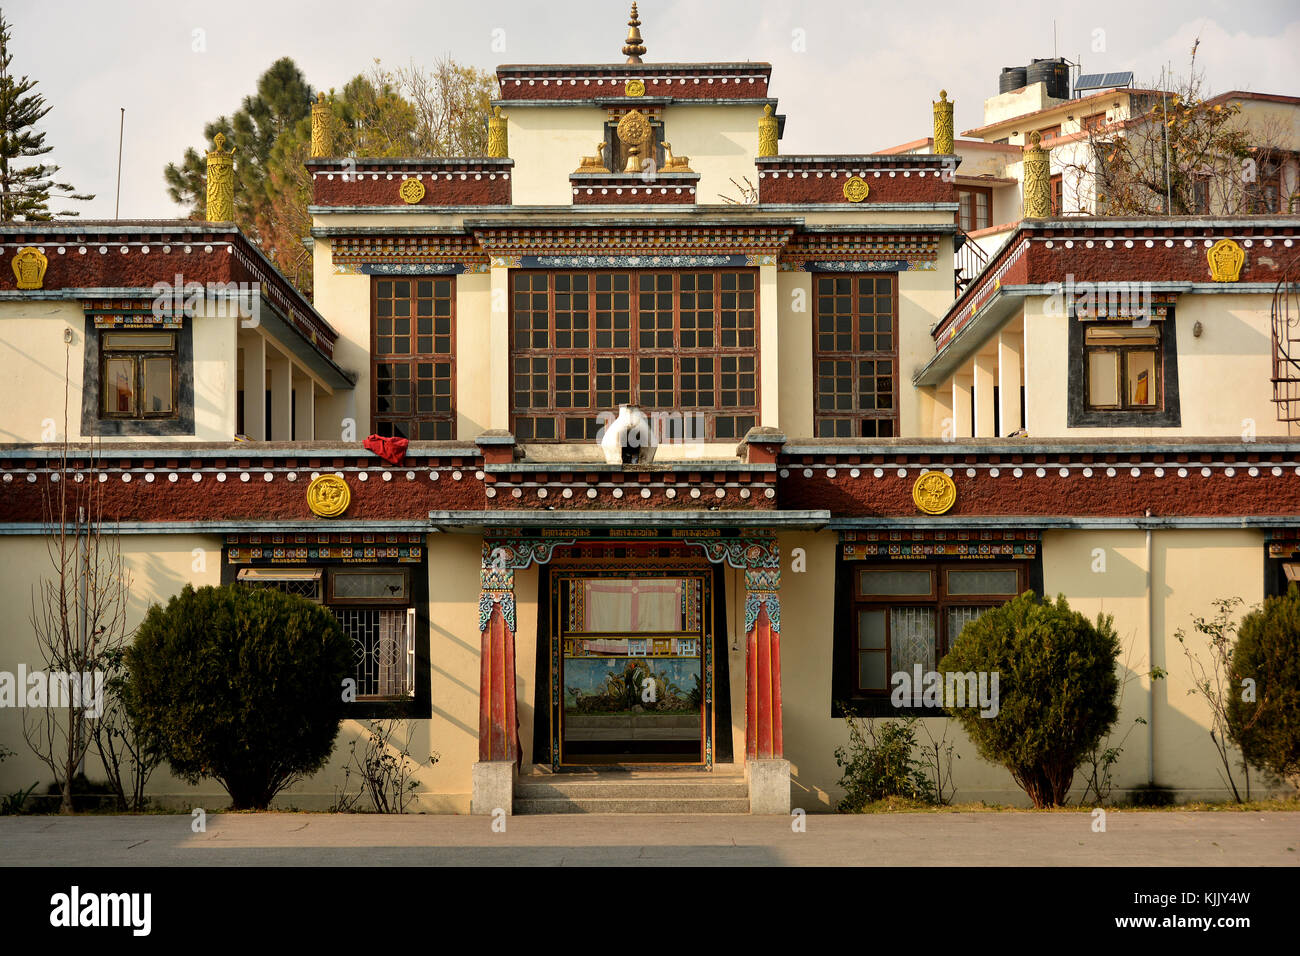 Jamgon Kongtrul monasteryd on Pullahari hill in Bodnath.  Nepal. Stock Photo